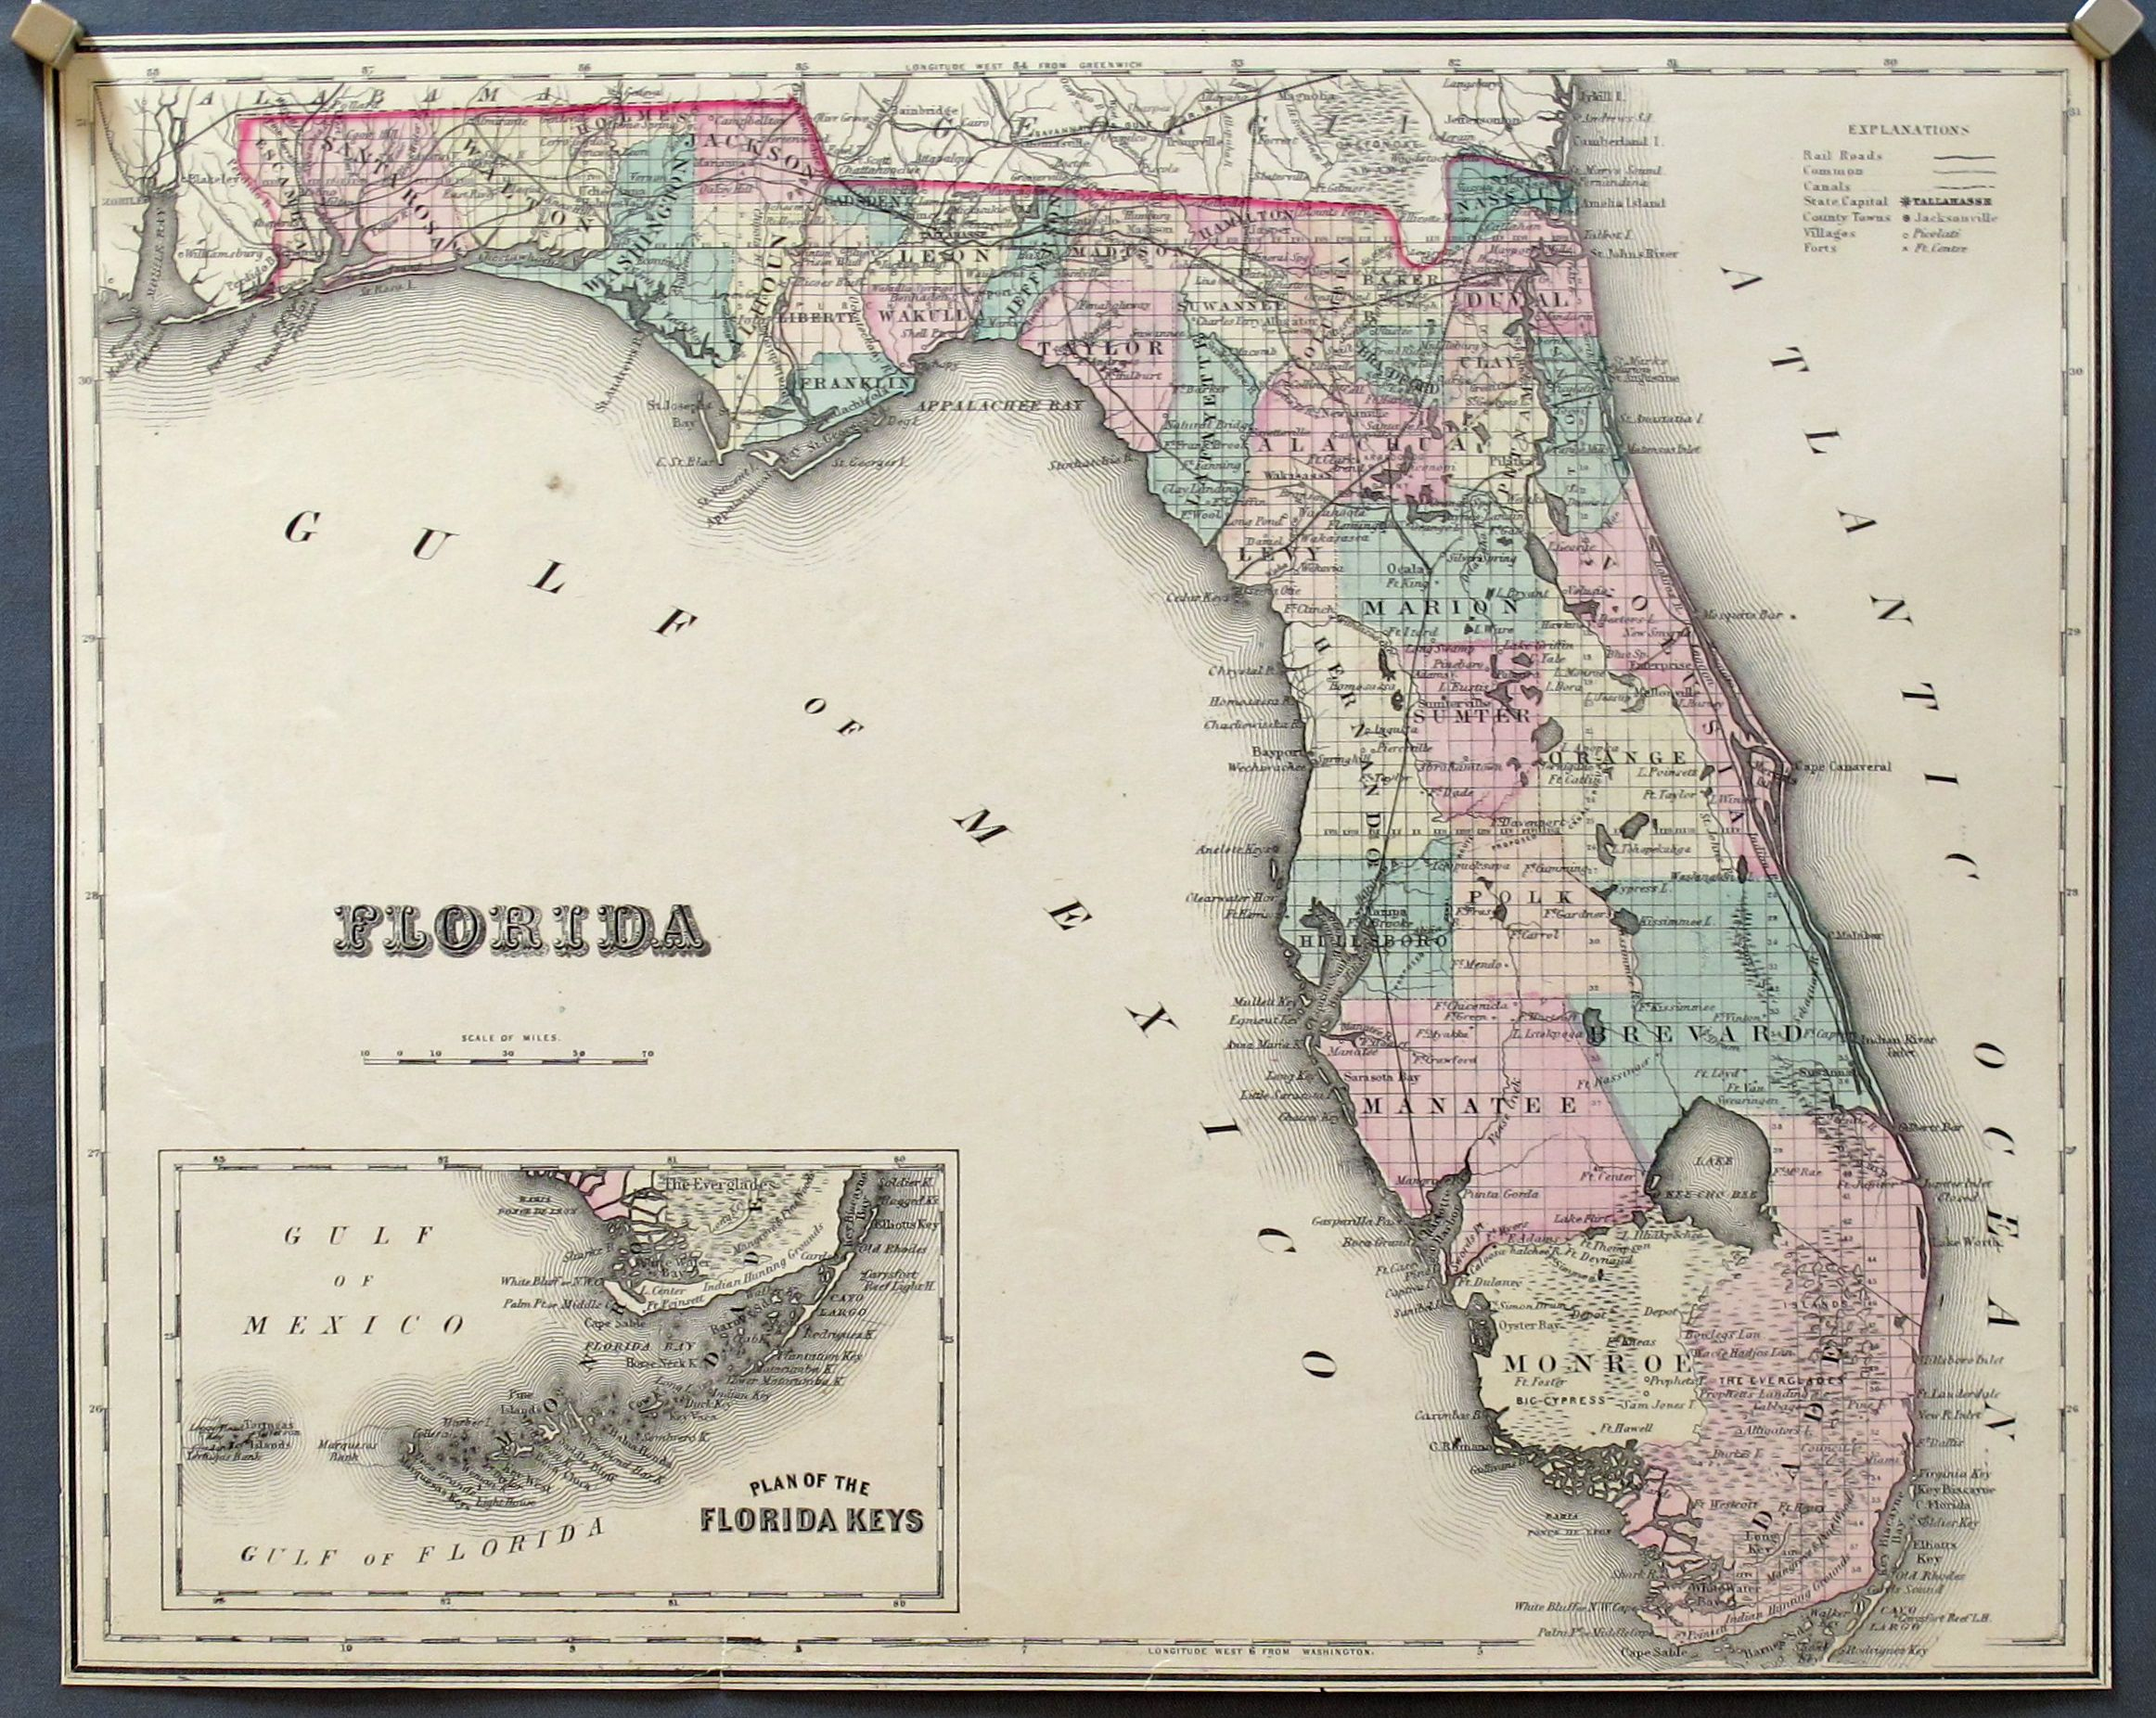 Old Florida Maps | The Wellington Conservatory: Old Maps And Antique - Old Florida Maps Prints